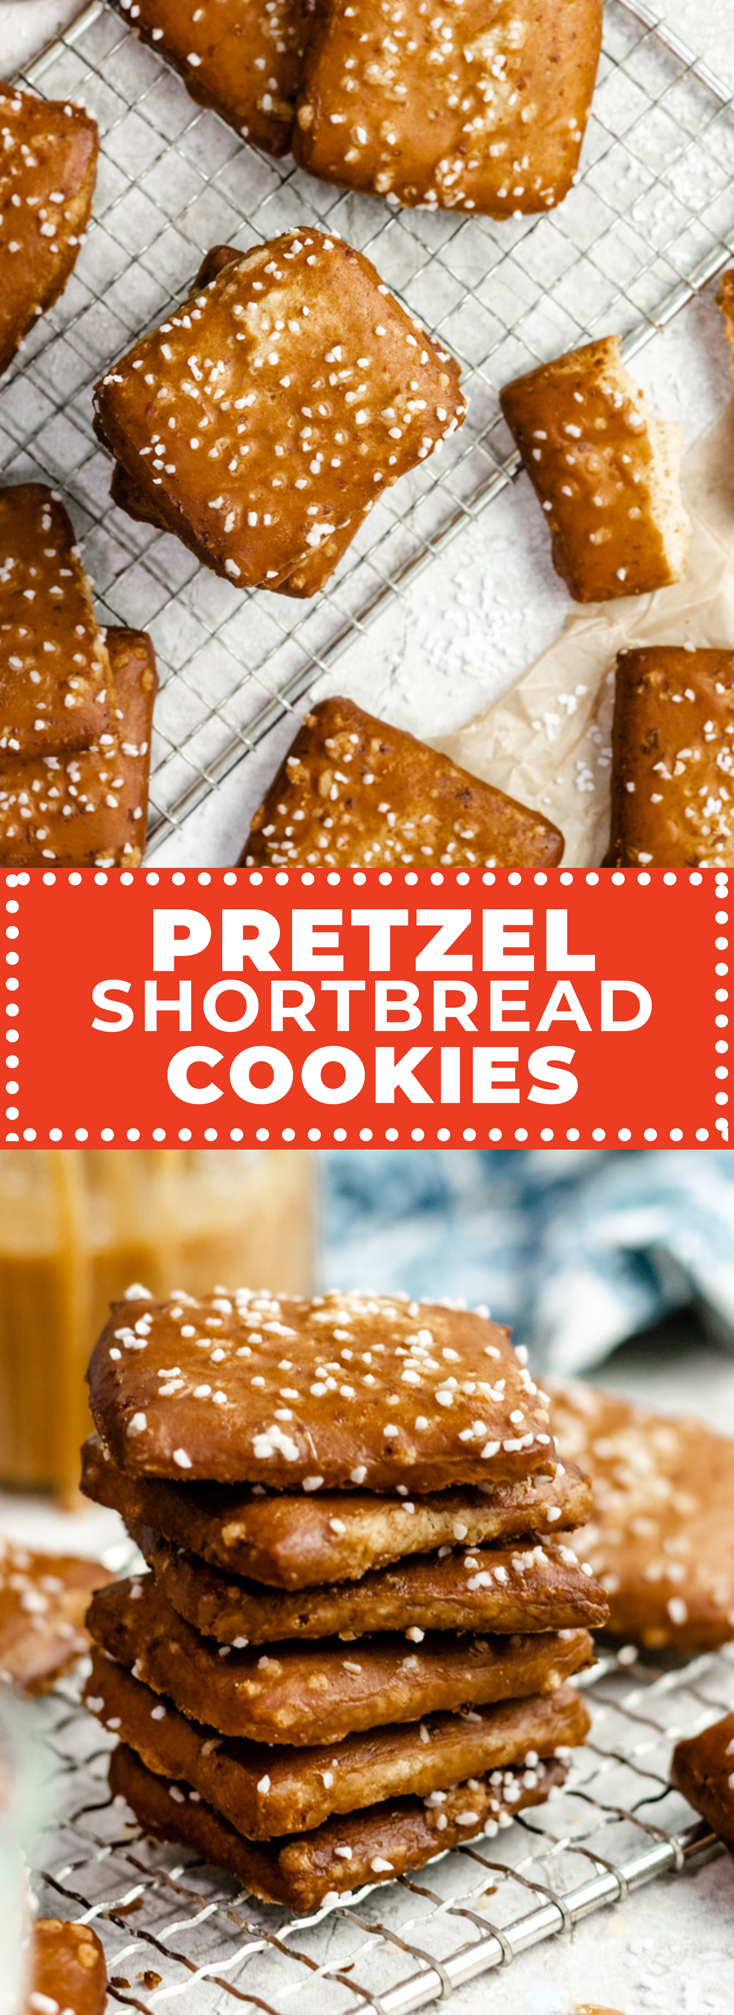 Inspired by the iconic cookies from Philly's Lost Bread Co., these Pretzel Shortbread Cookies are a melt-in-your-mouth mashup that's half pretzel, half shortbread, and 100% unlike anything you've ever tasted.| hostthetoast.com